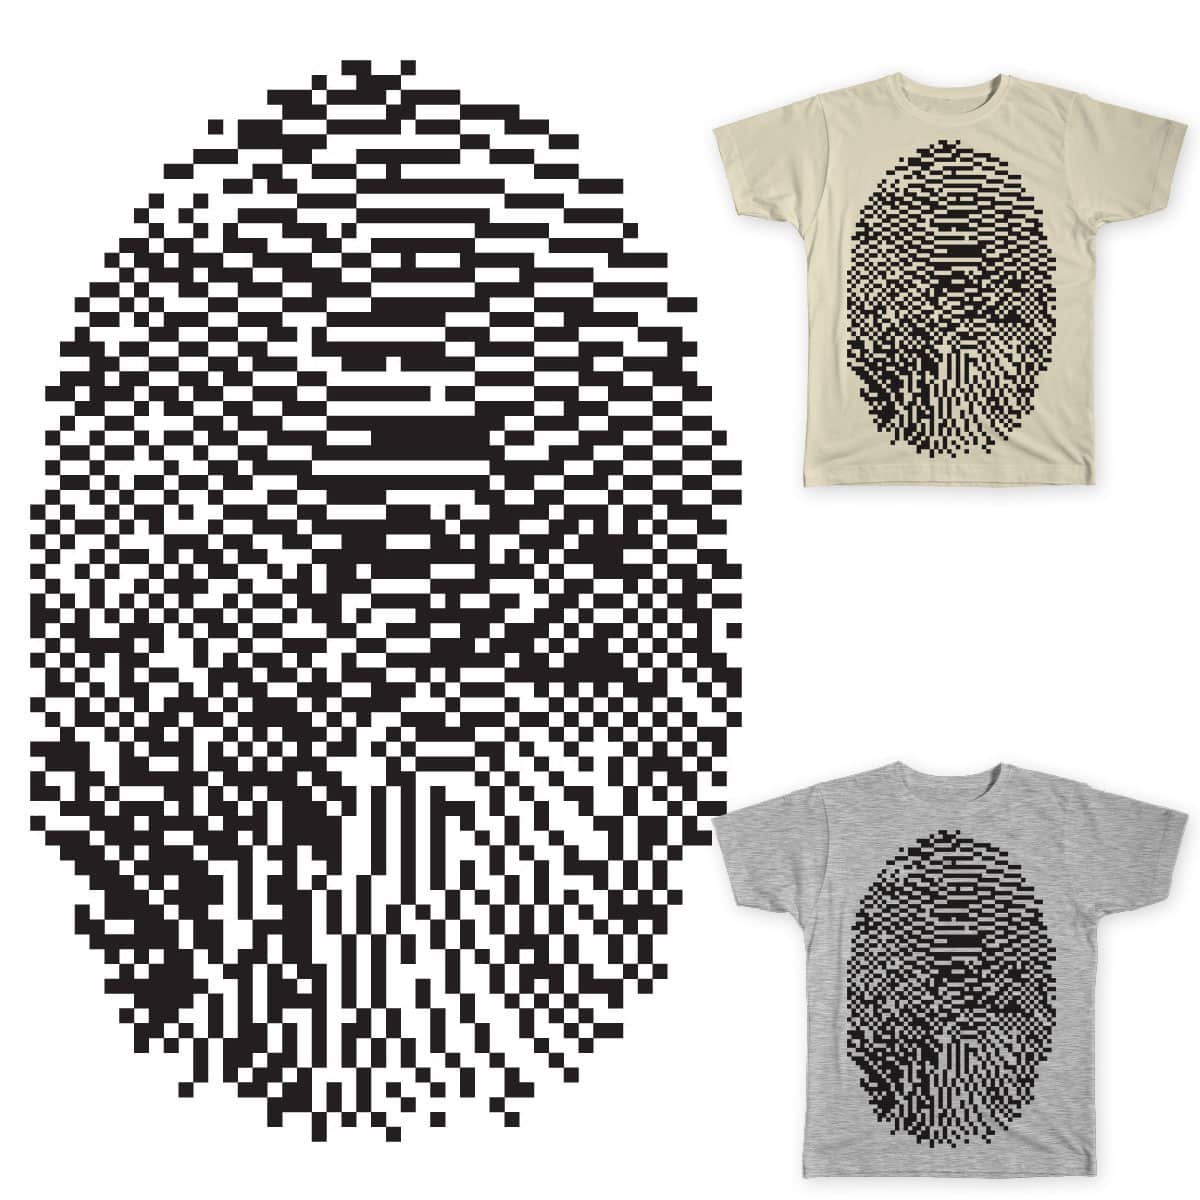 8-bit fingerprint by jpad on Threadless